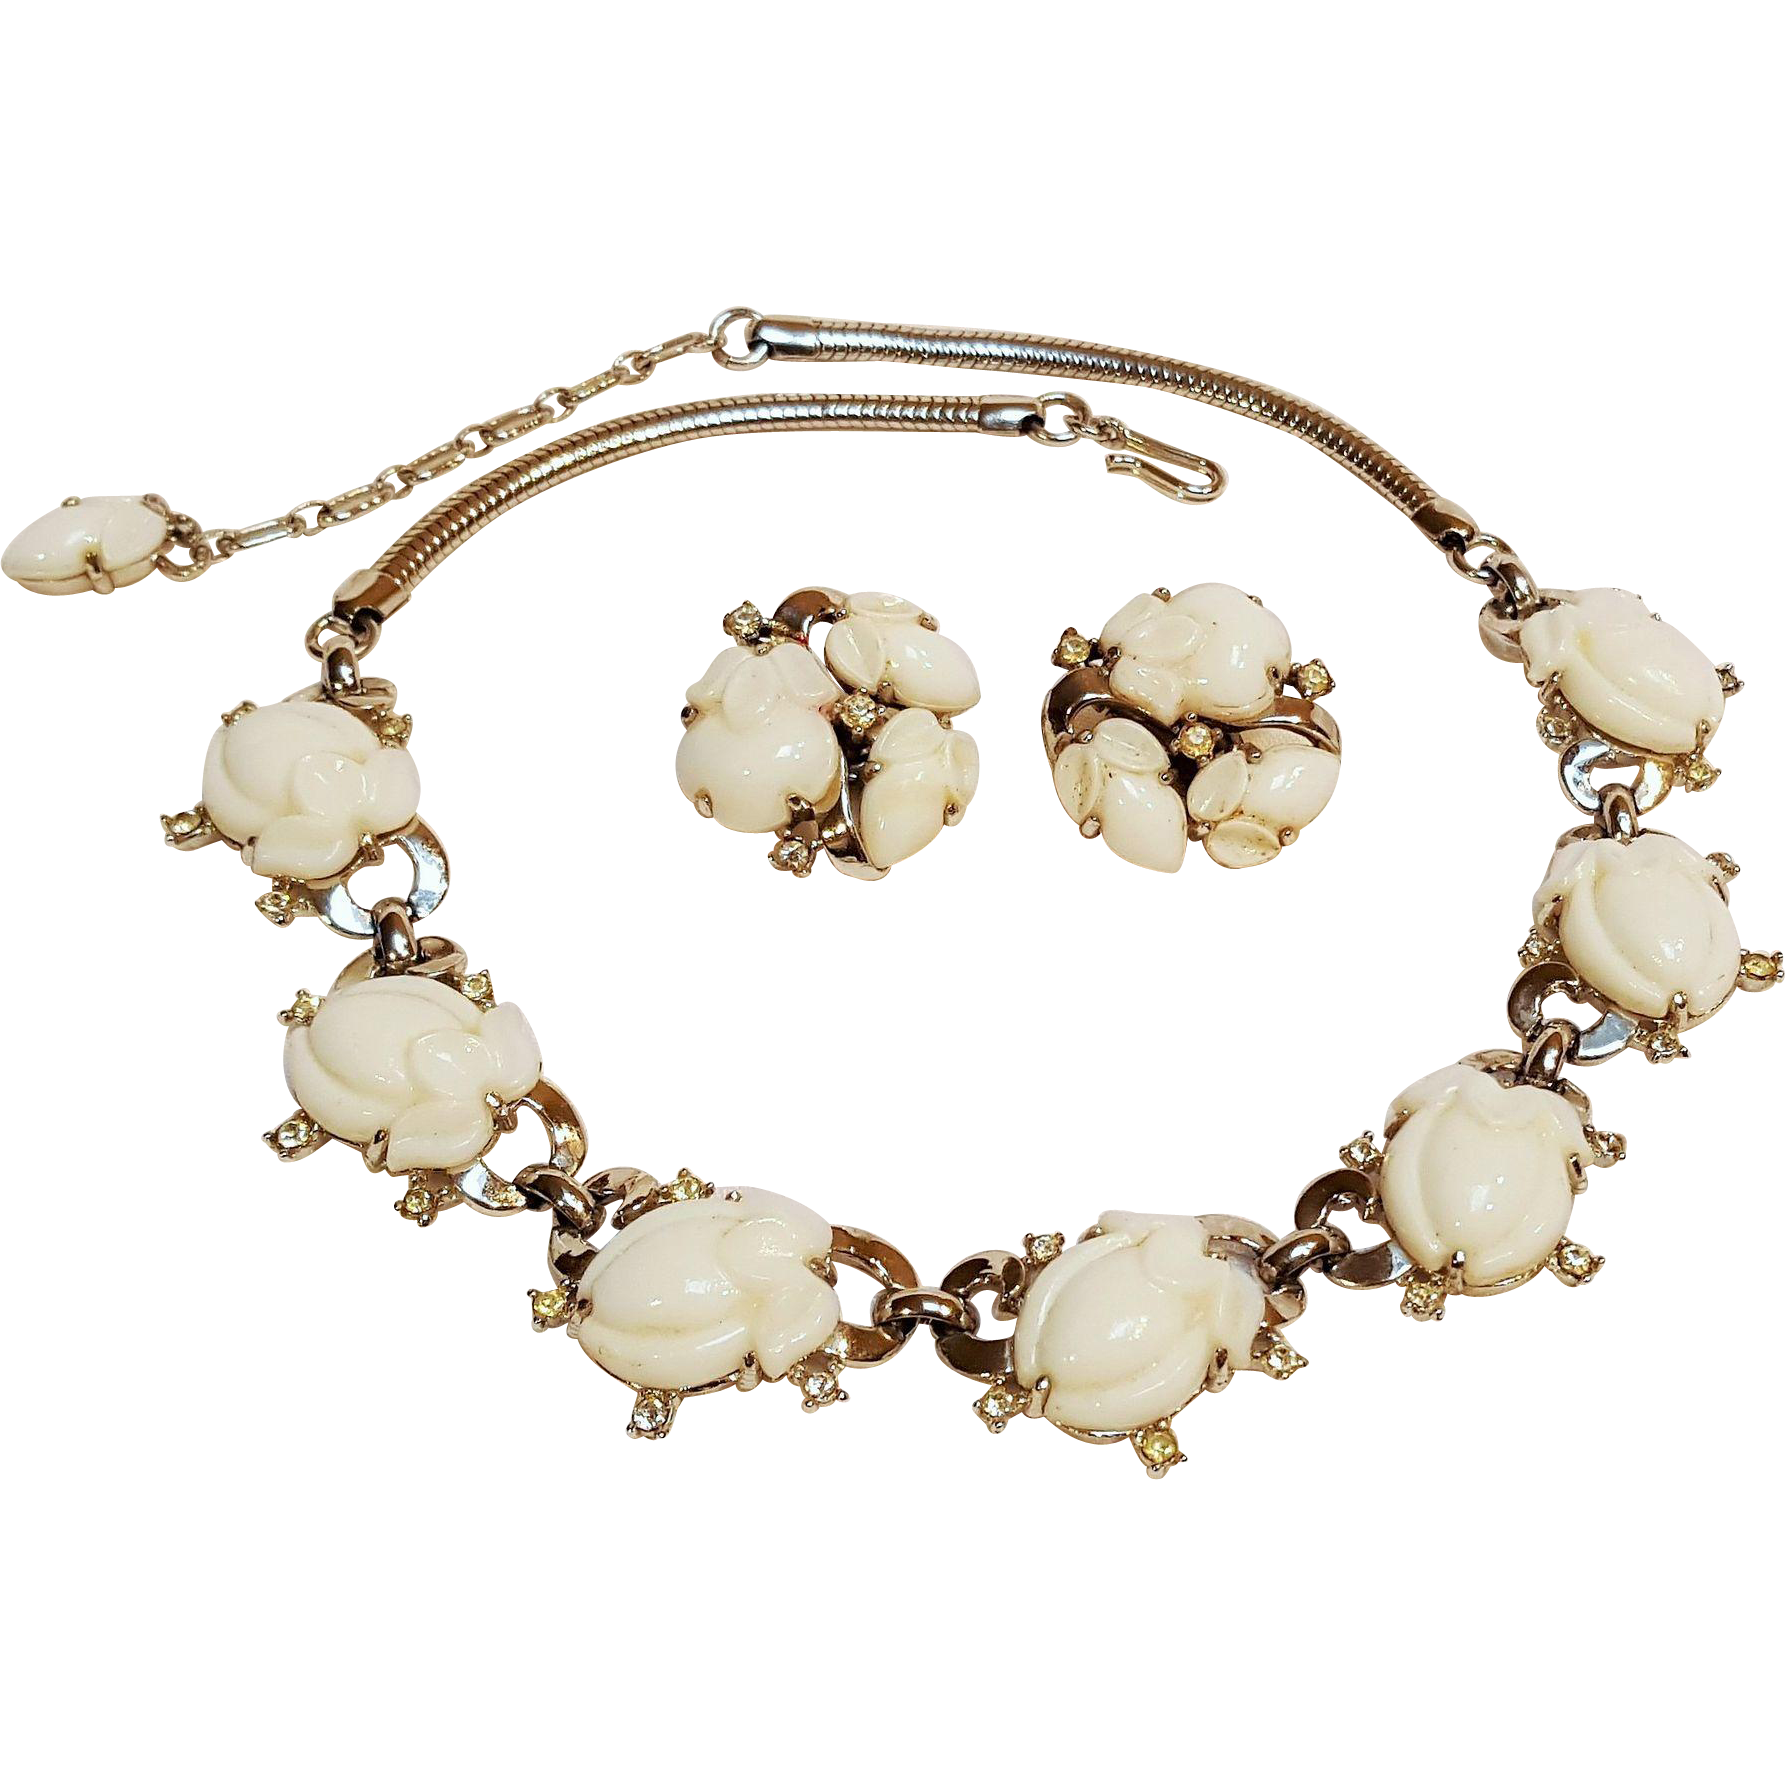 Trifari fruit salad necklace earrings set milk glass stones pre 1955